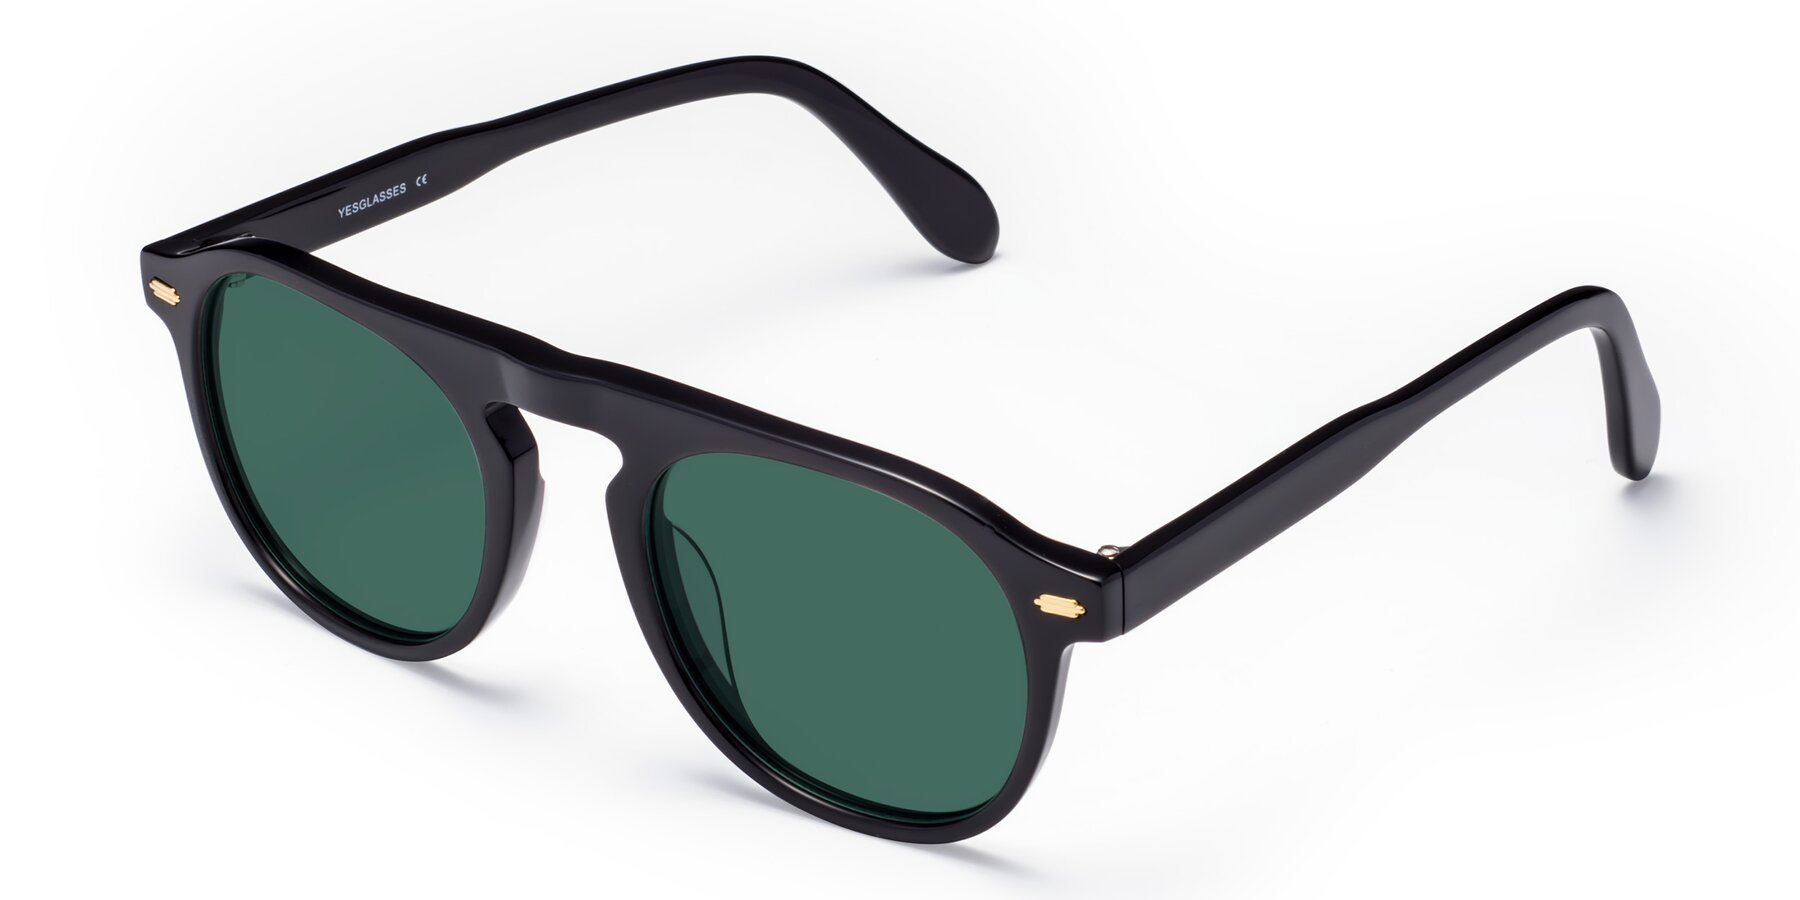 Angle of Mufasa in Black with Green Polarized Lenses